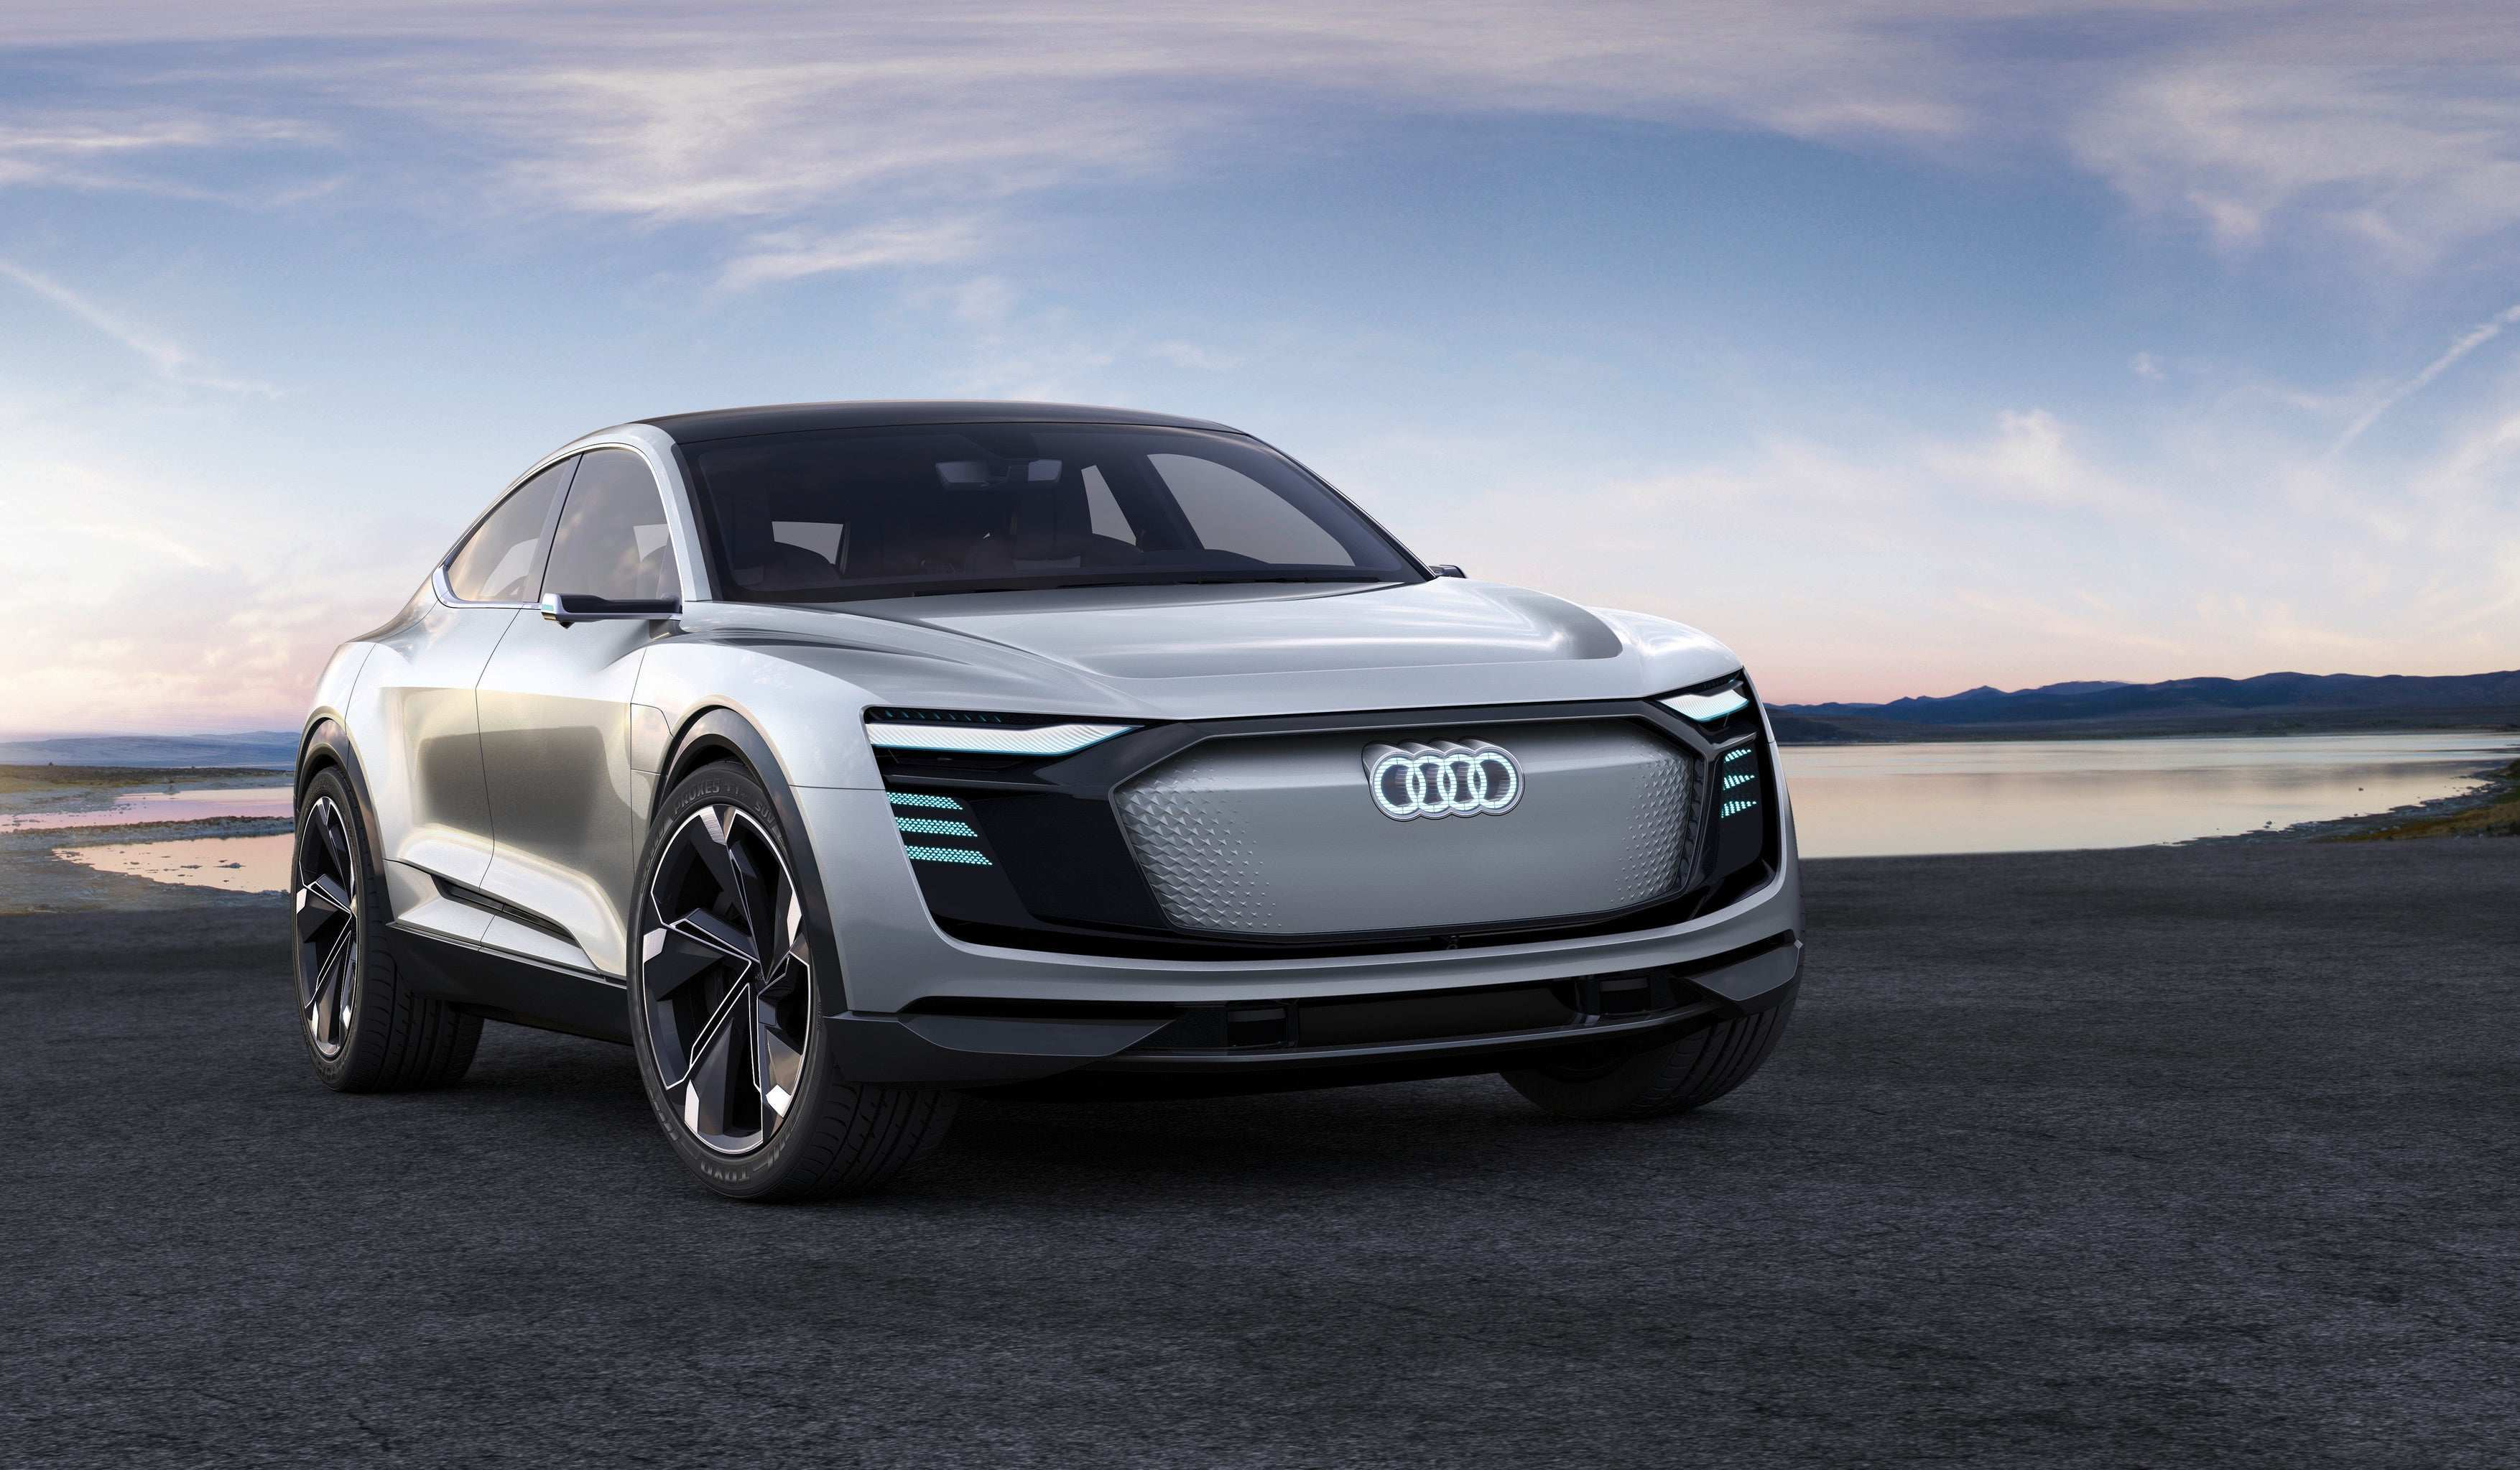 44 All New Audi Vorsprung 2020 Plan Release